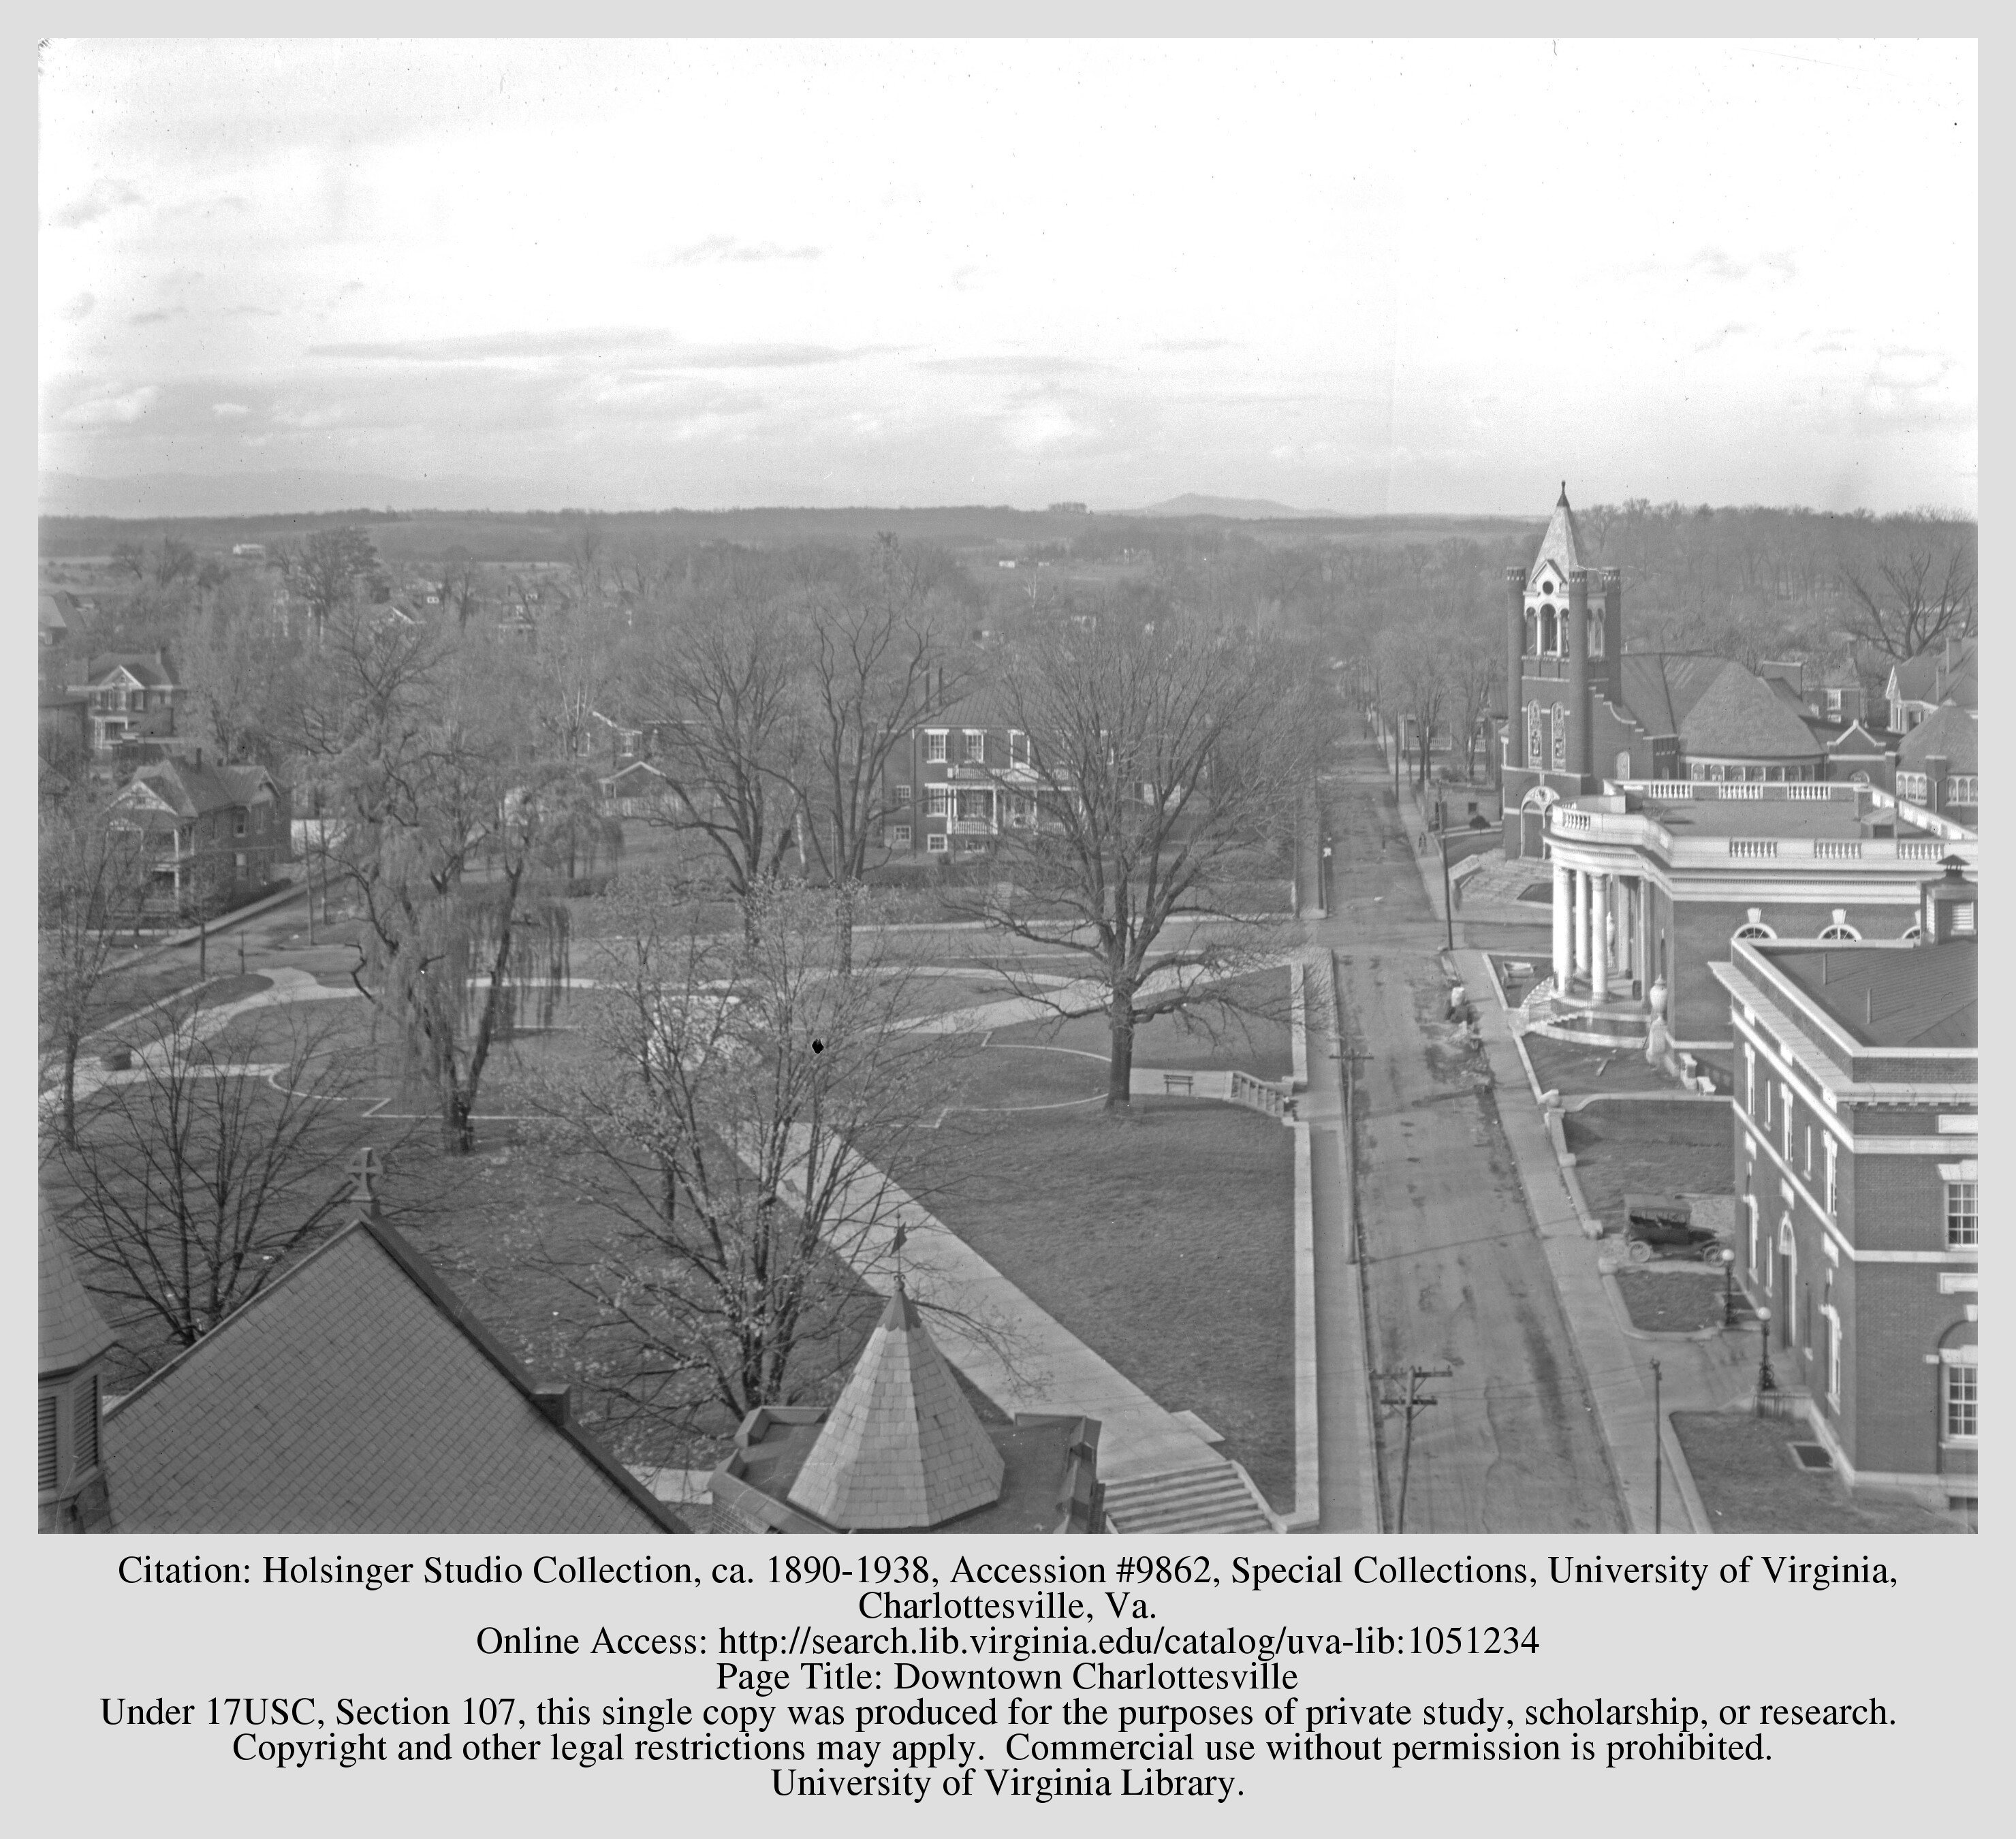 The land which would become Lee Park in 1924, just prior to the statue's installation. Courtesy of the Holsinger Studio Collection (#9862), Special Collections Department, University of Virginia Library